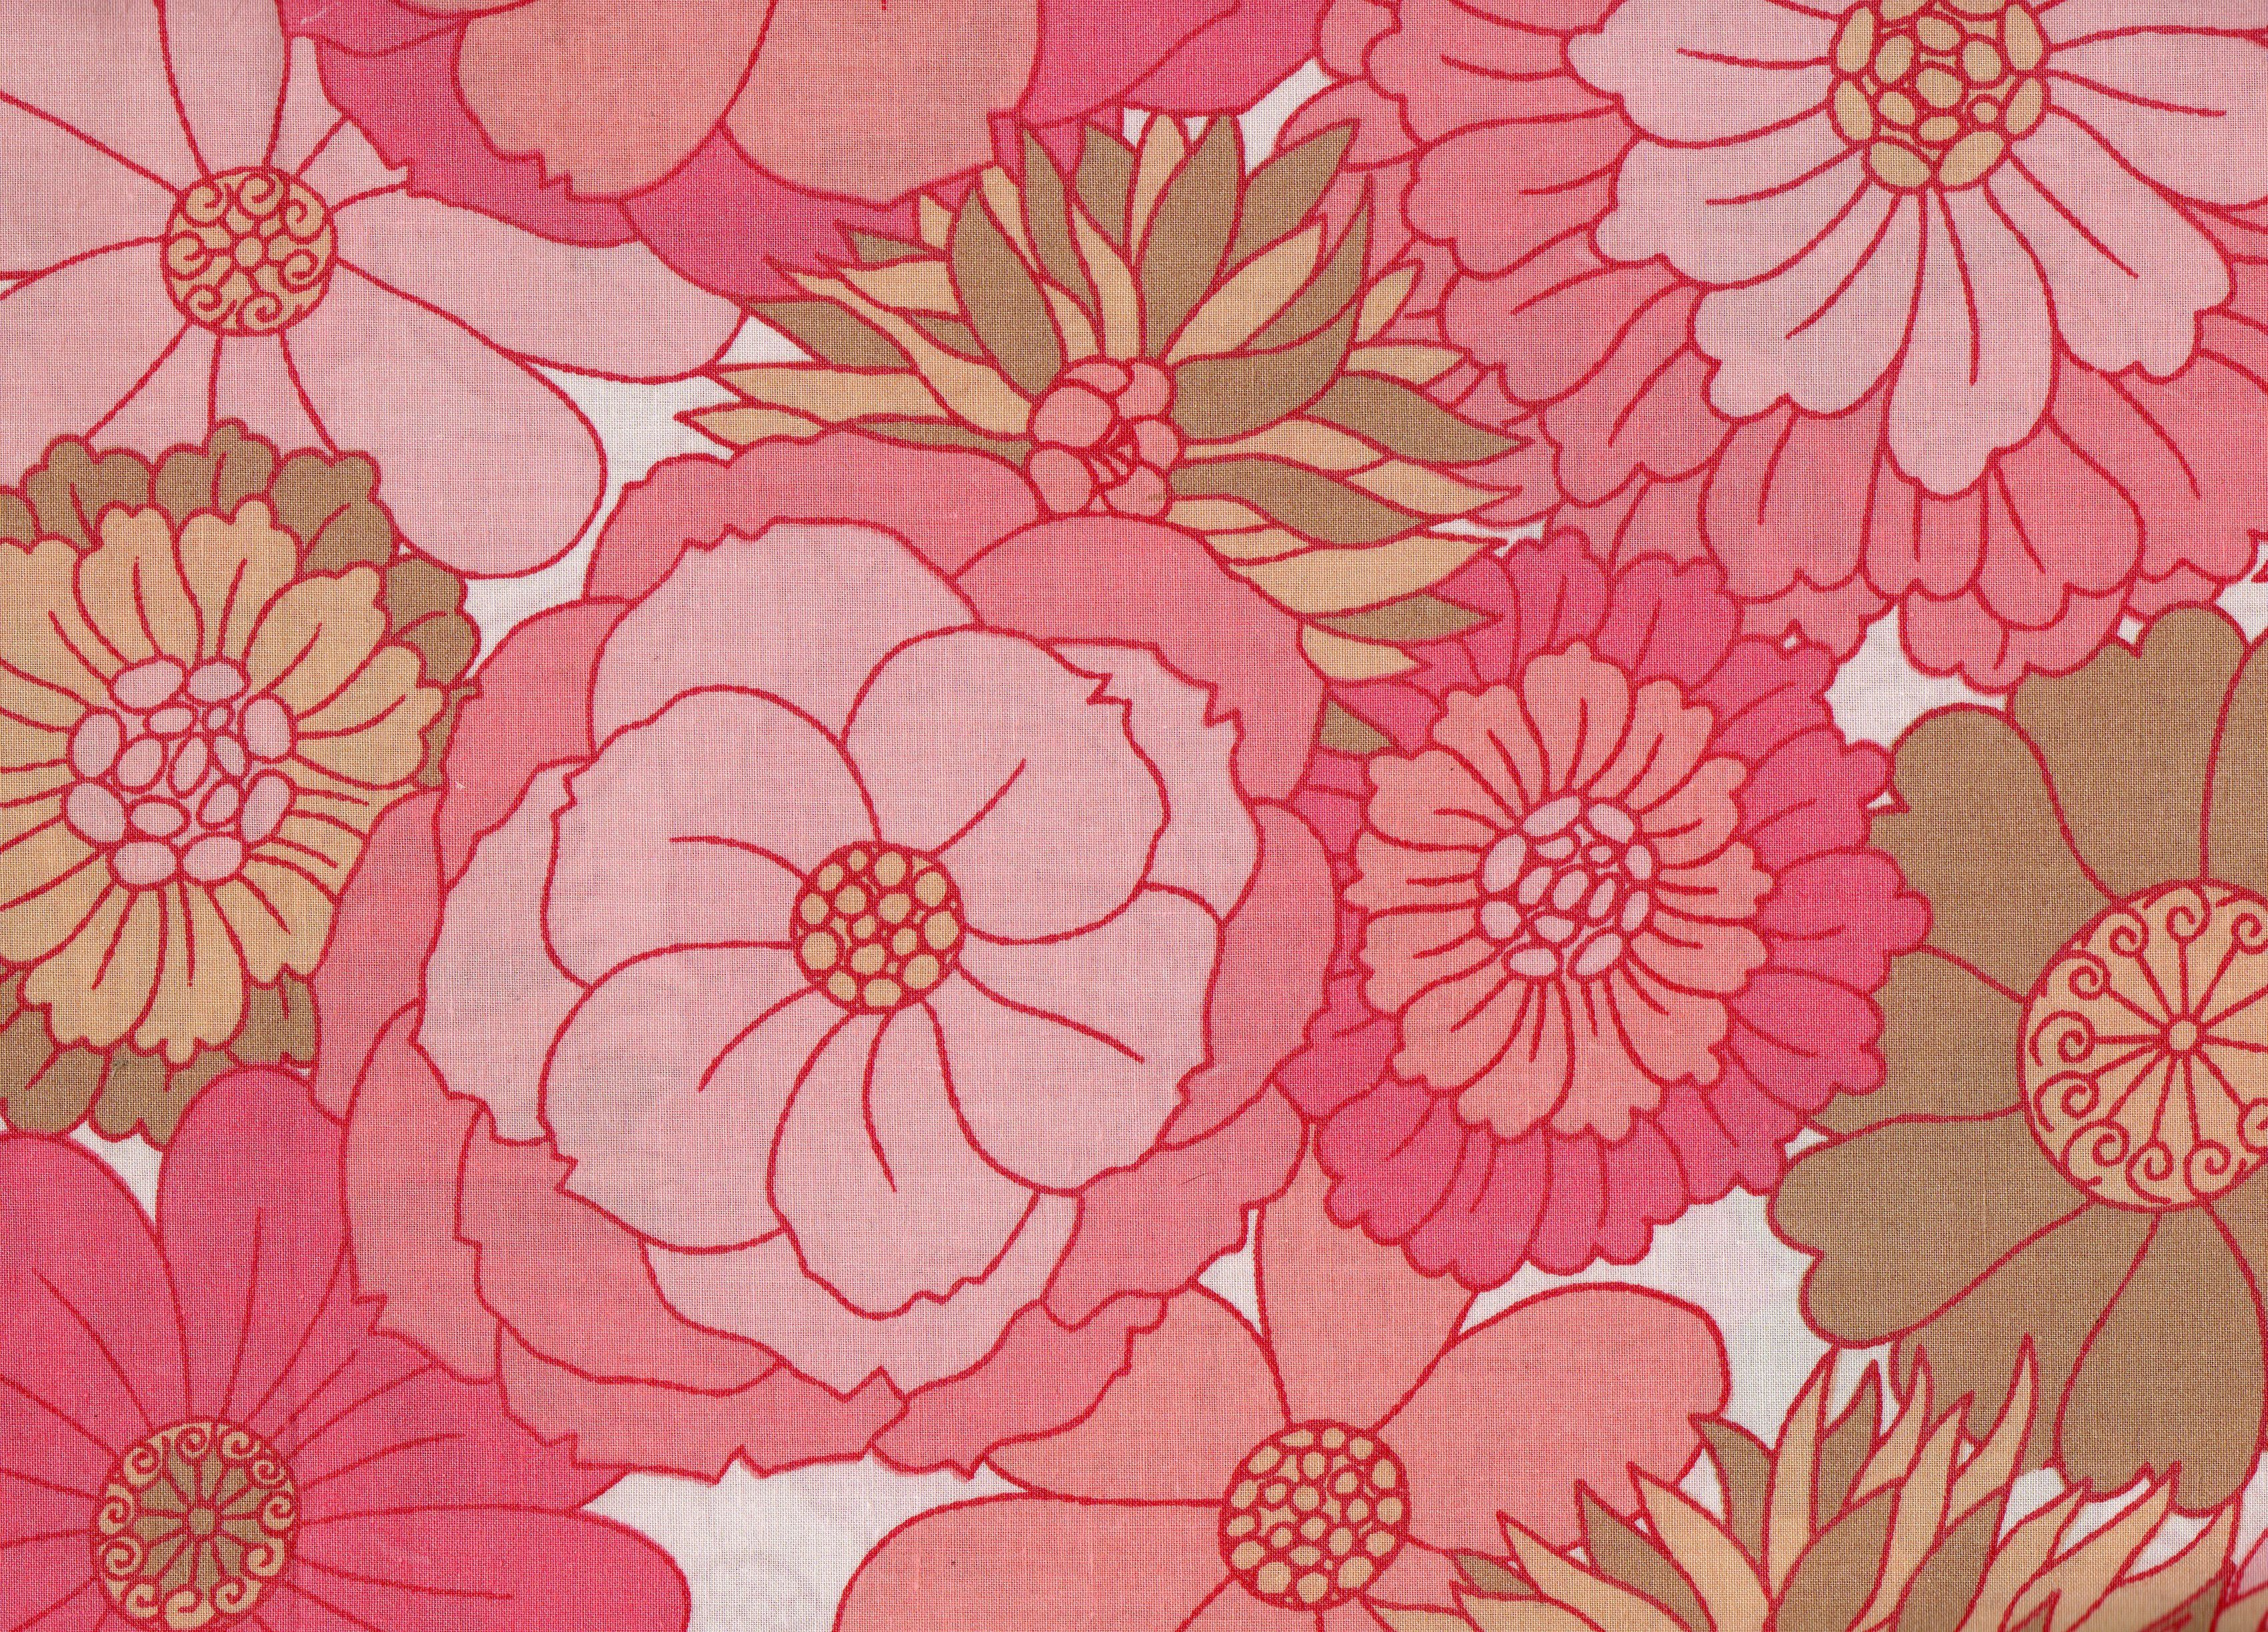 Bedspread designs texture - My 70 S Bedspread Was Made From This Sure All Little Girls Need A Bit Of